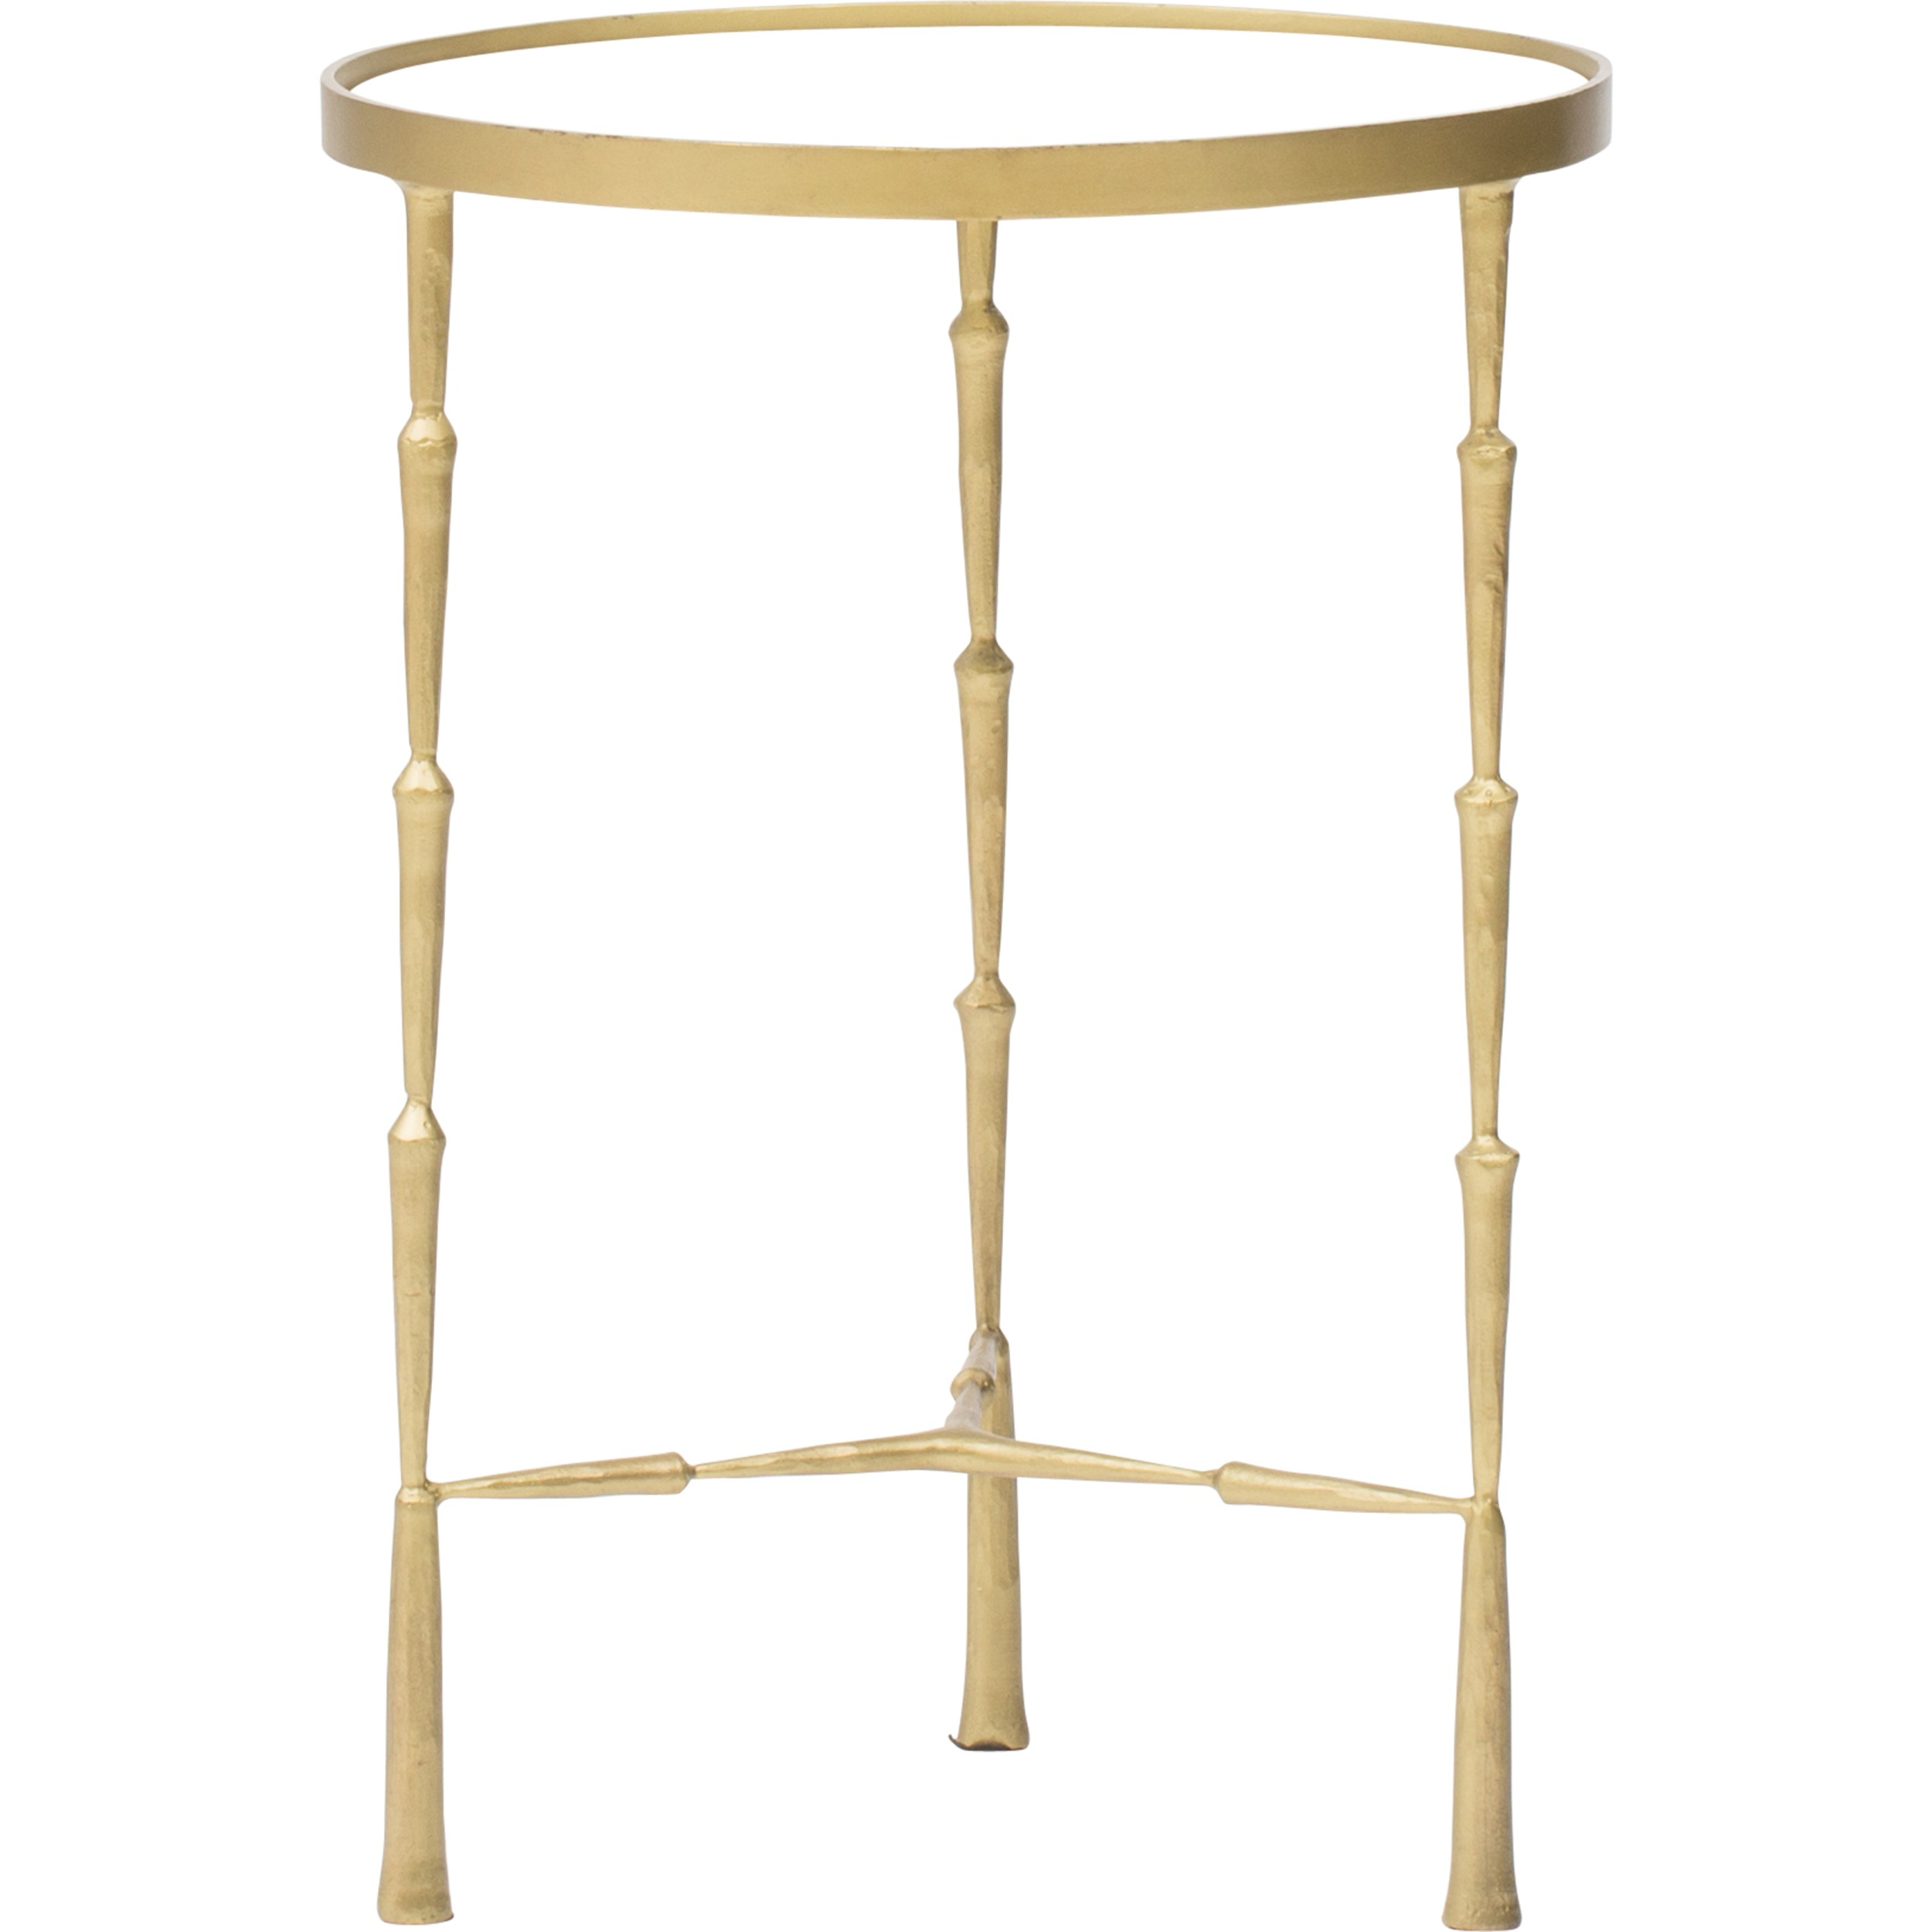 spike accent table brass tables furniture large threshold brown homesense patio mirrored lamp better homes and gardens coffee circle drum shaped end white round small storage